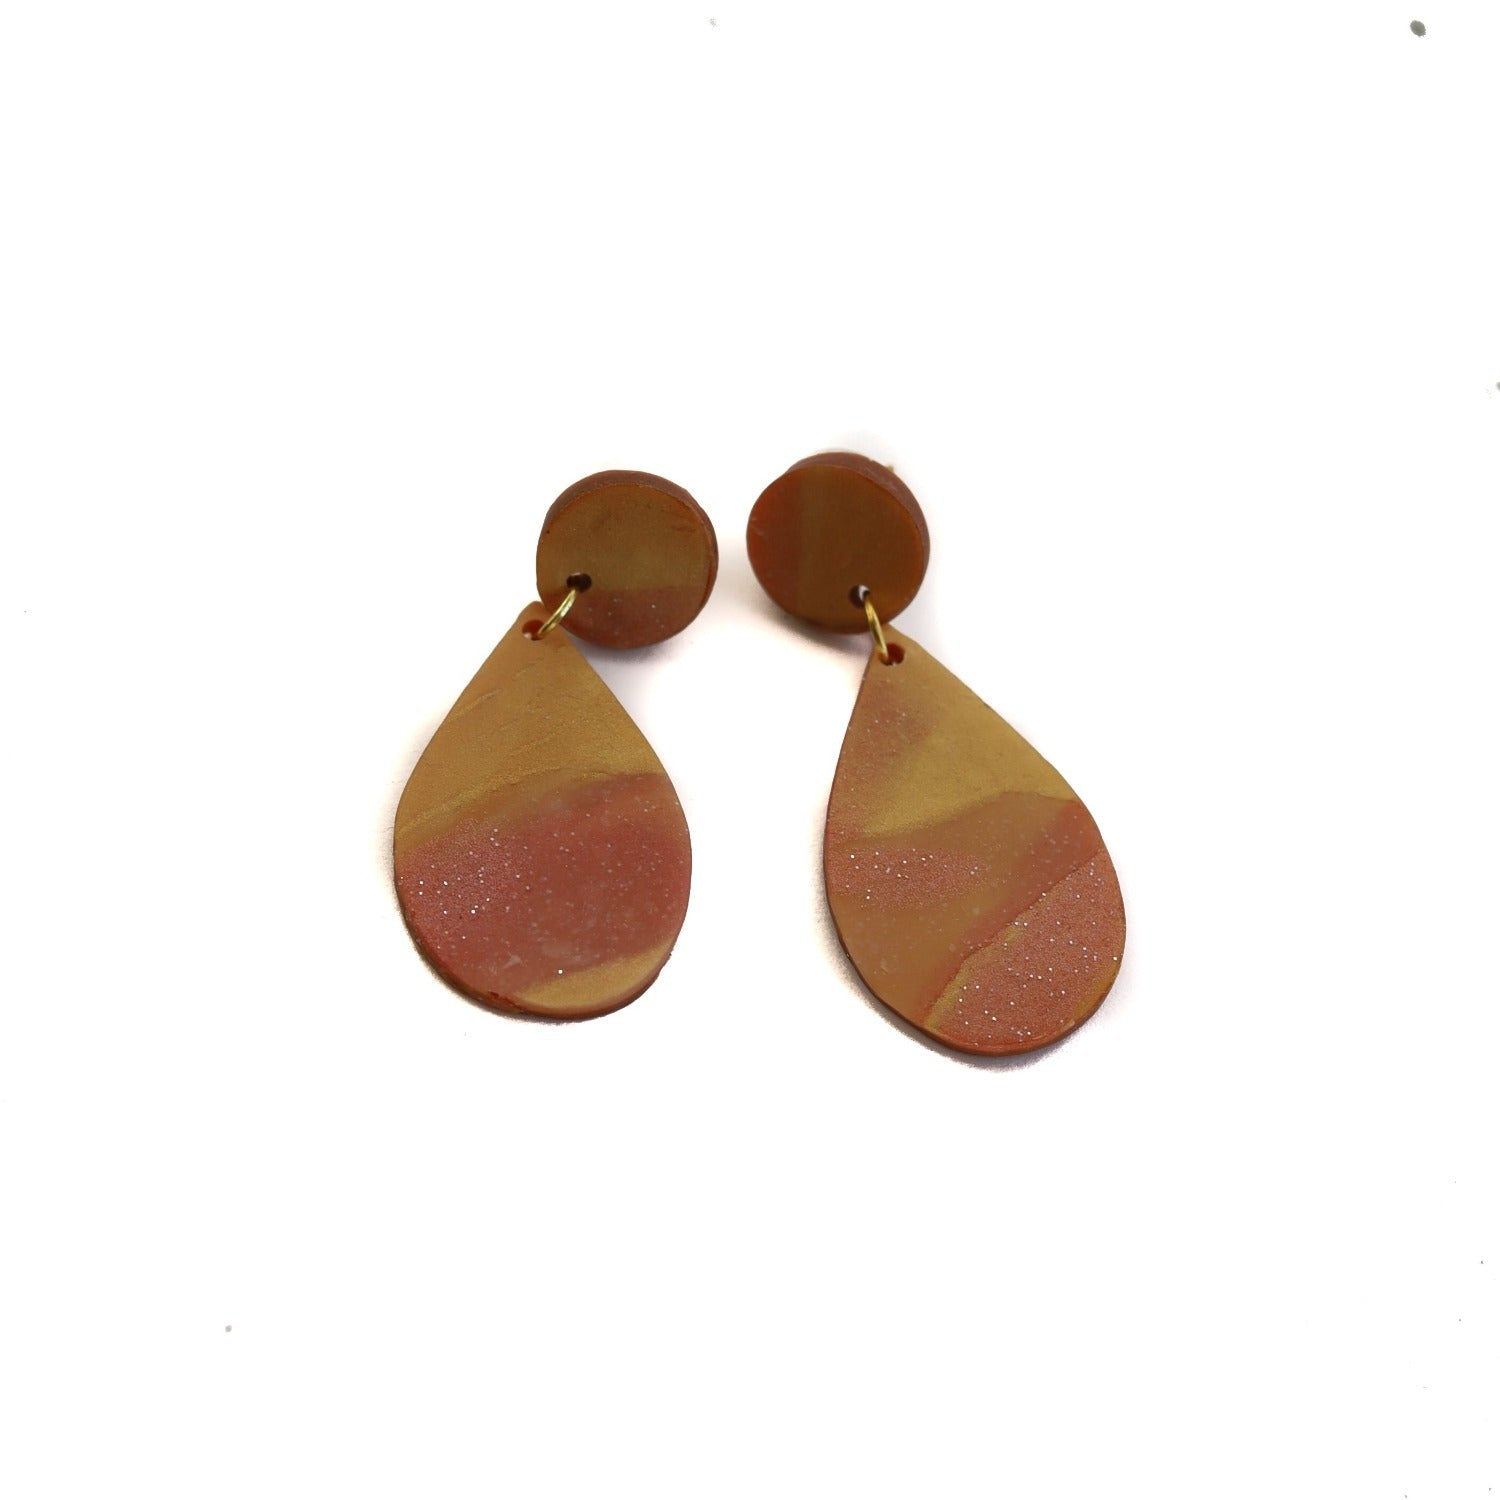 clay earring set: sunset eileen